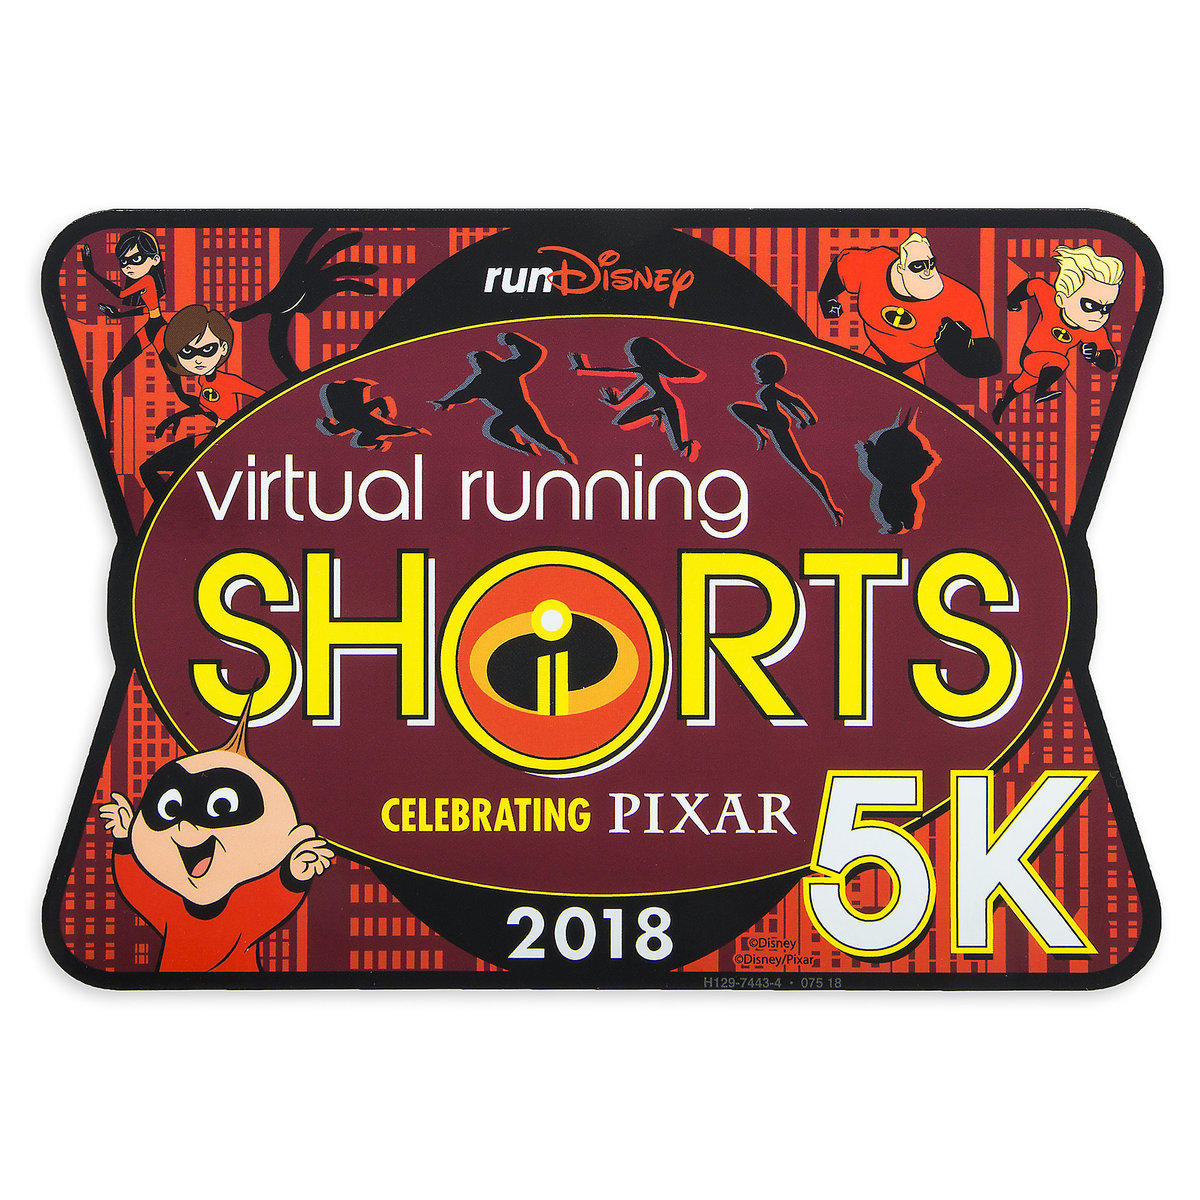 6ba7d22980a Product Image of Incredibles 2 runDisney Virtual Running Shorts 5K 2018  Magnet - Limited Release